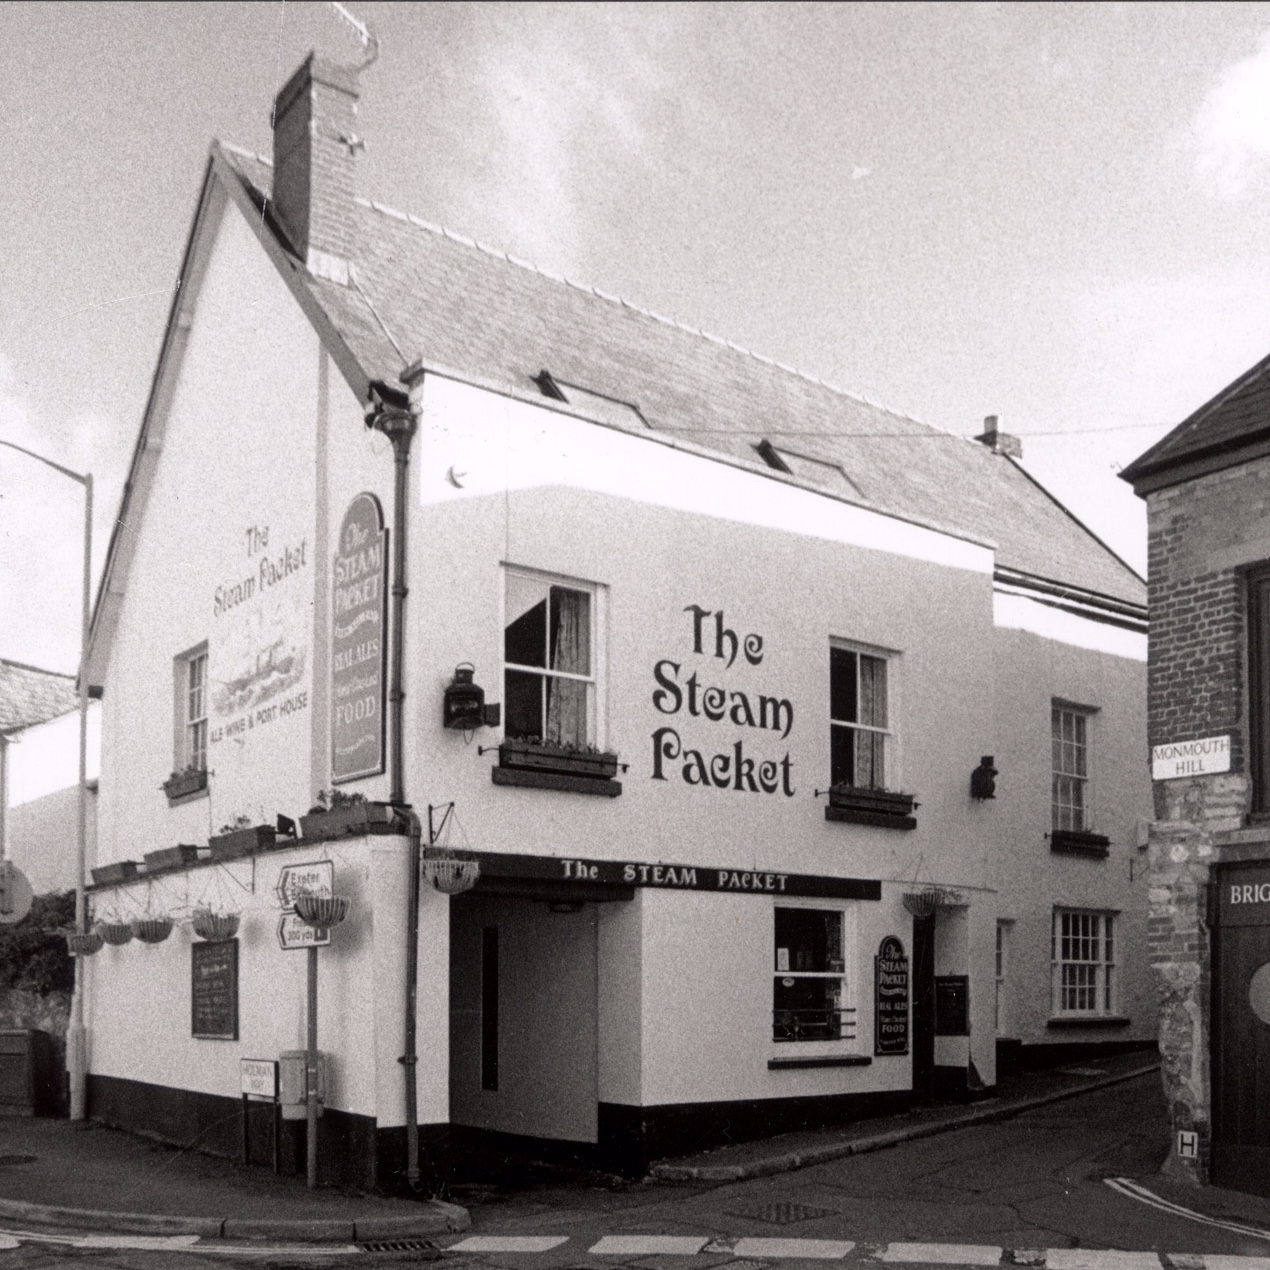 The Steam Packet, now Route 2 Cafe | Topsham pub